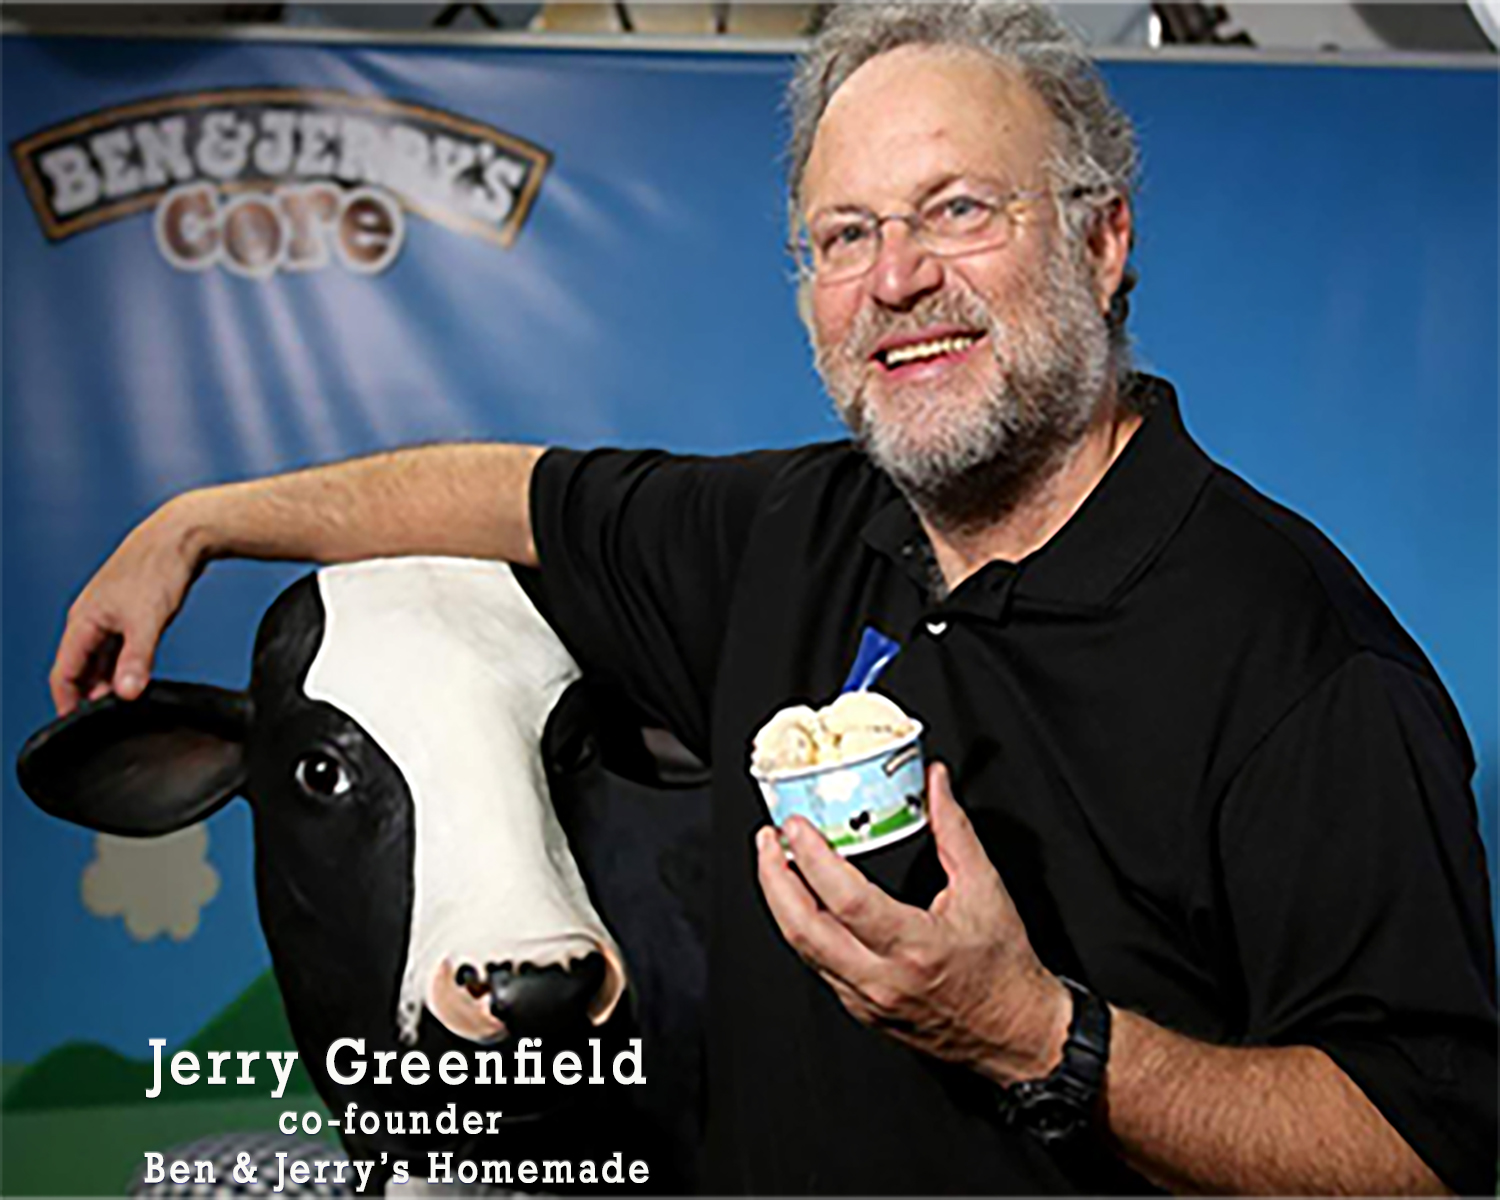 Jerry Greenfield, Co-Founder, Ben & Jerry's Homemade